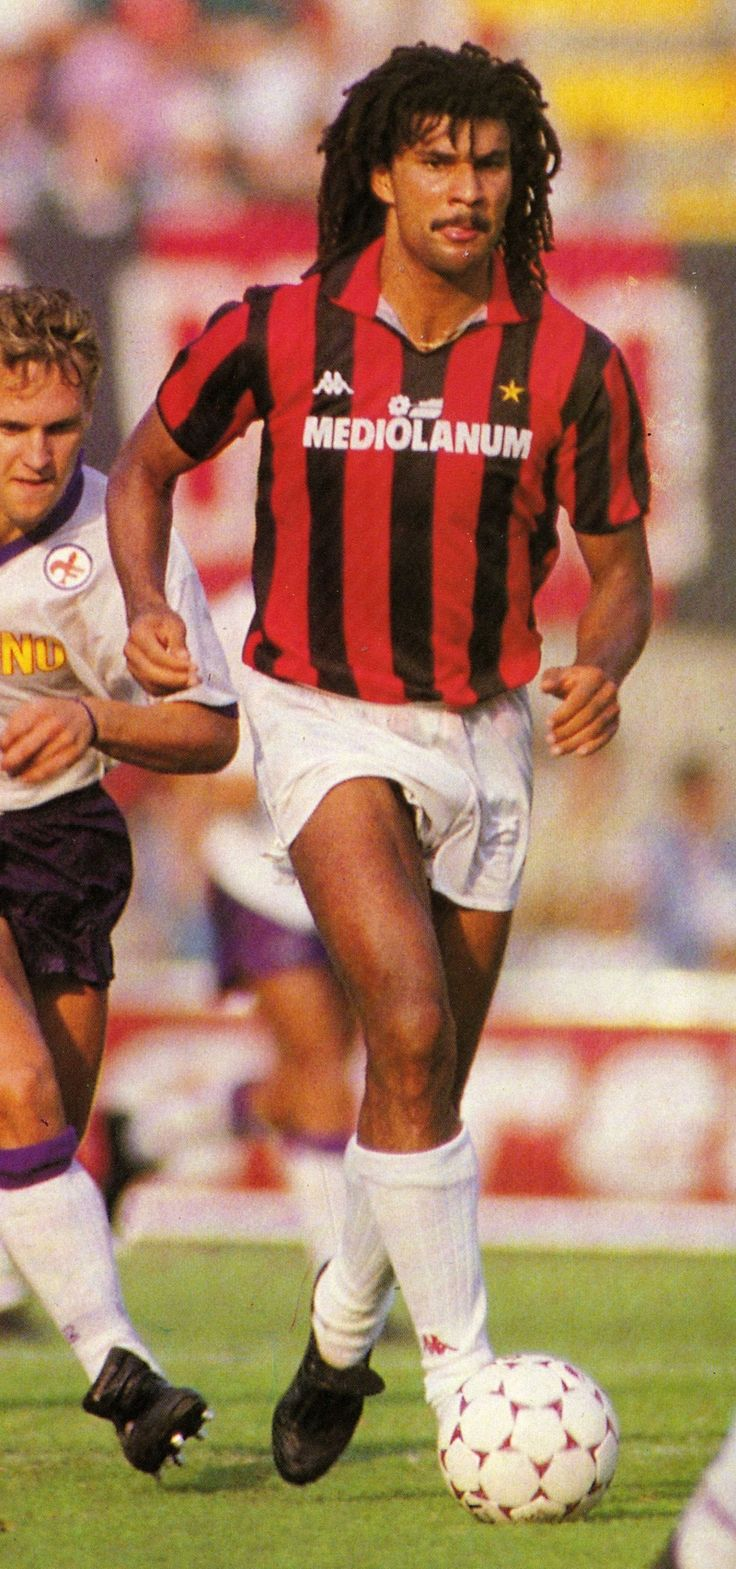 Ruud Gullit http://1502983.talkfusion.com/product/connect/